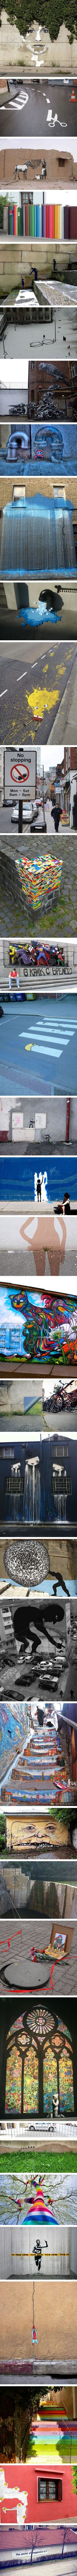 Look around.  What kind of street art do you see?